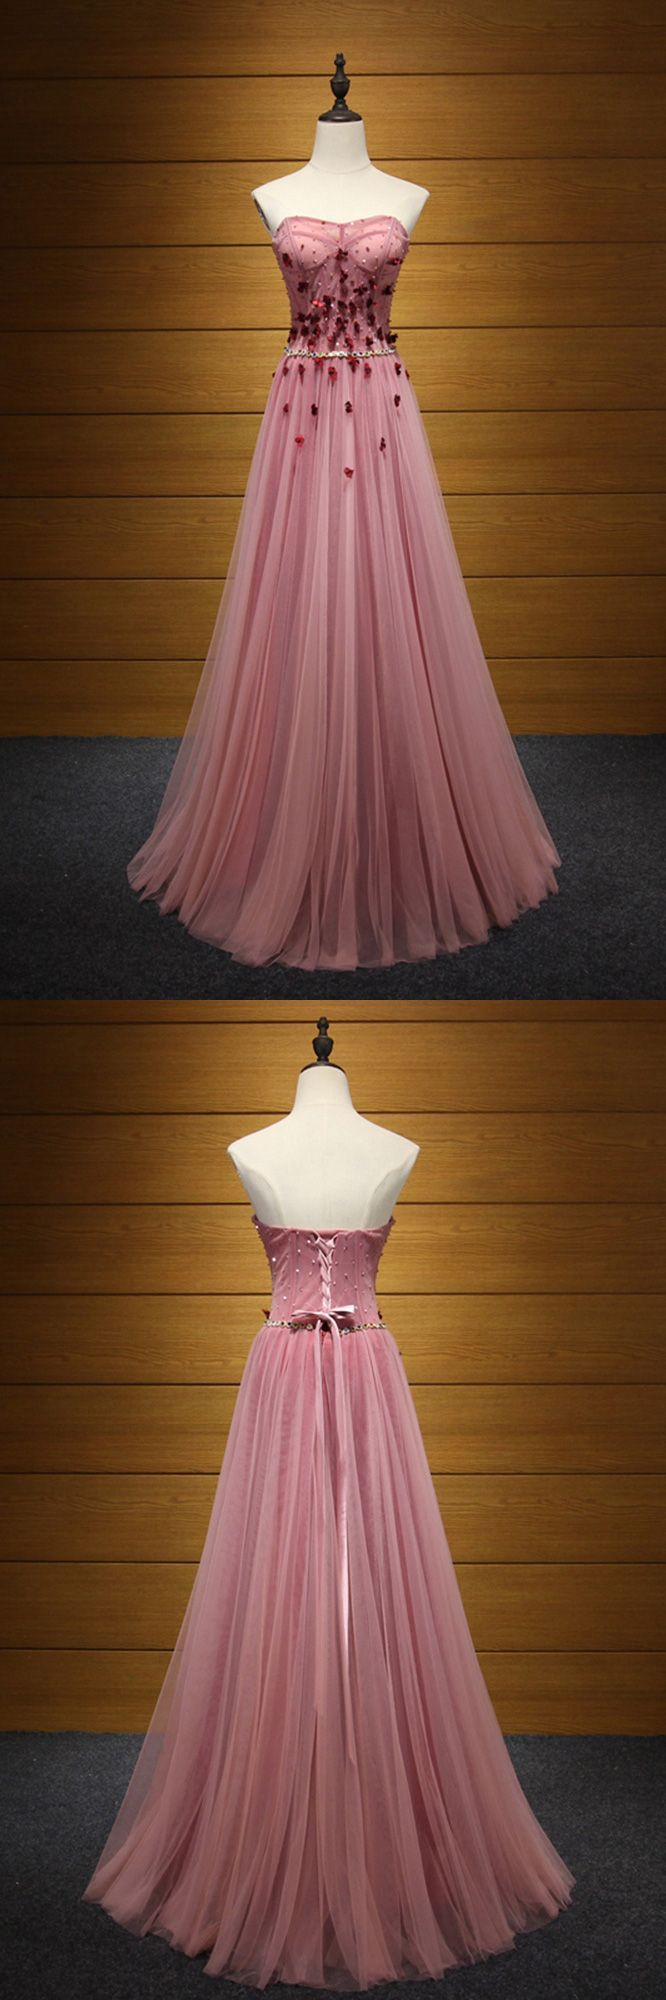 Only $189, Princess Long Pink Prom Dress Strapless With Beading Flowers #AKE18005 at #SheProm. SheProm is an online store with thousands of dresses, range from Prom,Formal,Evening,Pink,A Line Dresses,Long Dresses,Customizable Dresses and so on. Not only selling formal dresses, more and more trendy dress styles will be updated daily to our store. With low price and high quality guaranteed, you will definitely like shopping from us. Shop now to get $10 off!